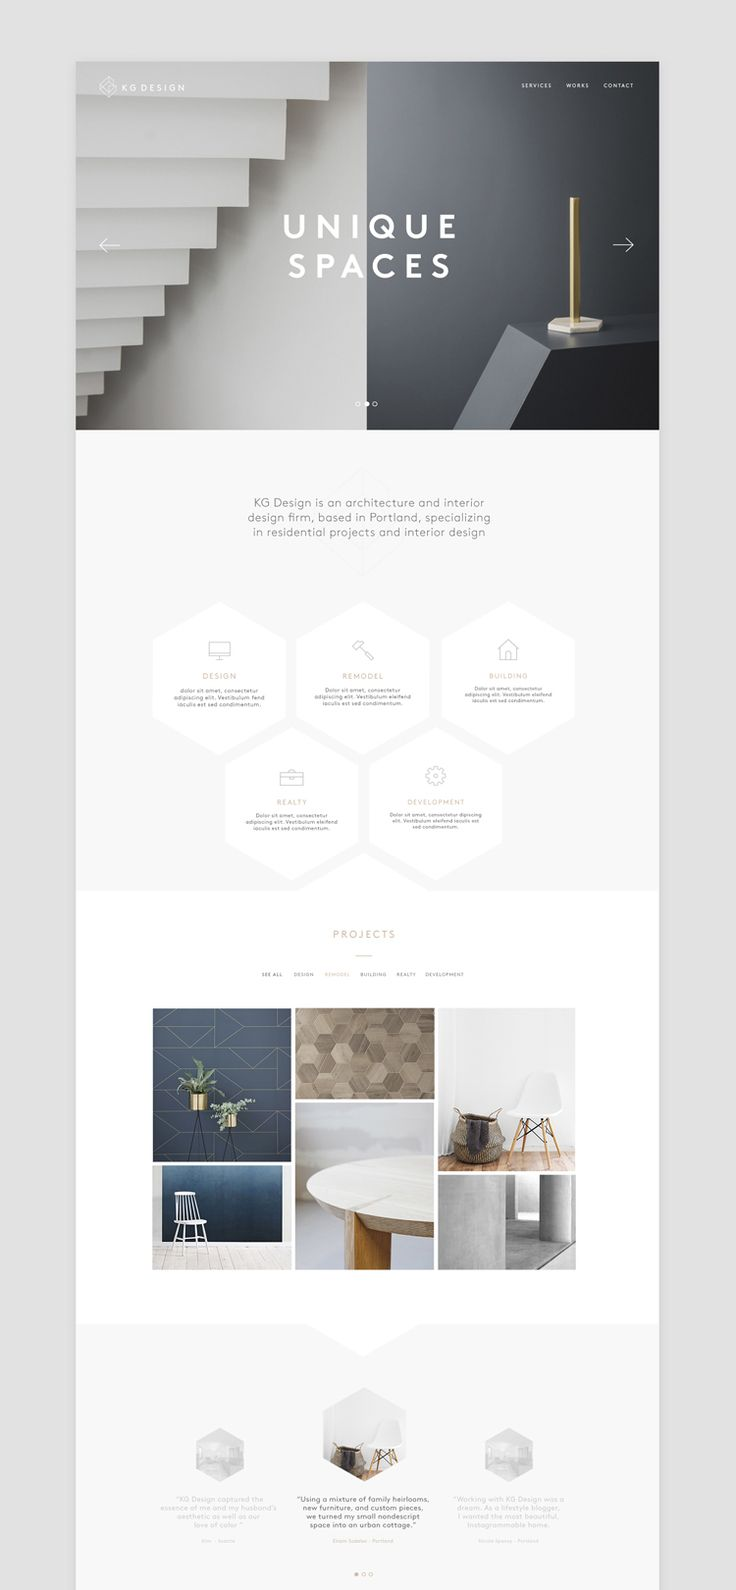 Picture of 16 designed by Sonia Castillo for the project KG Design. Published on the Visual Journal in date 10 November 2016